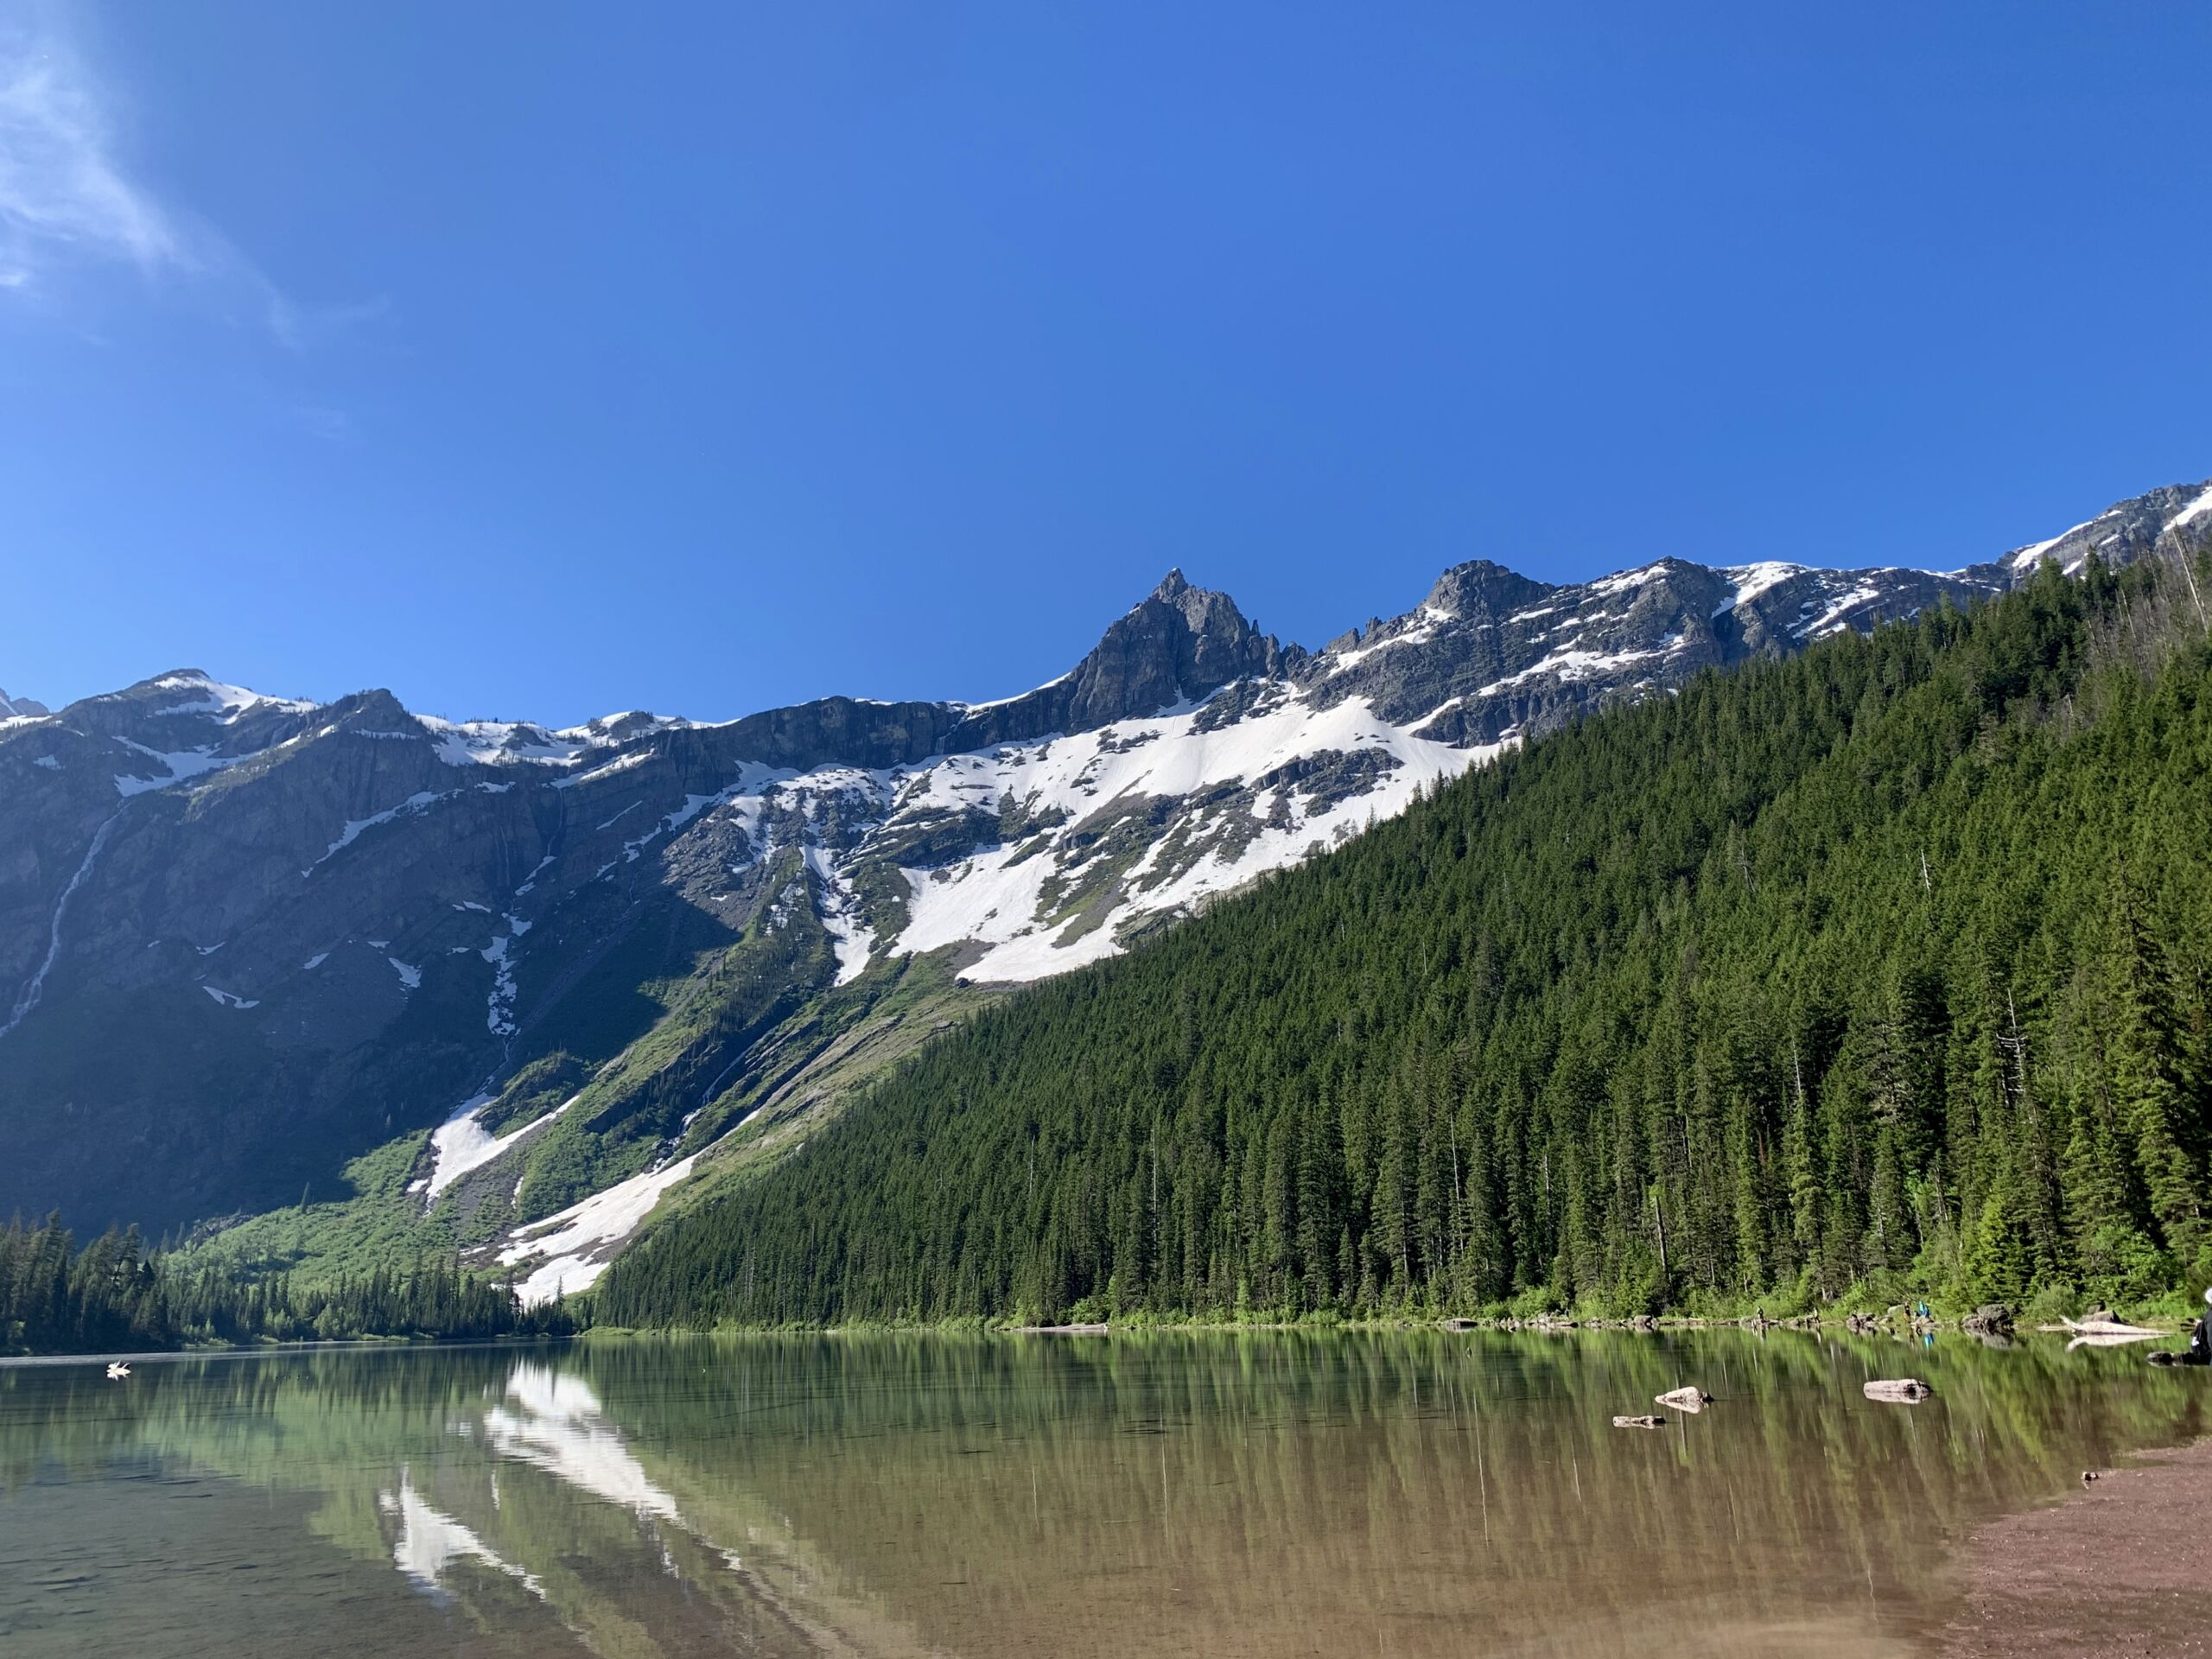 Hike to Avalanche Lake: Glacier National Park - Avalanche Lake photo